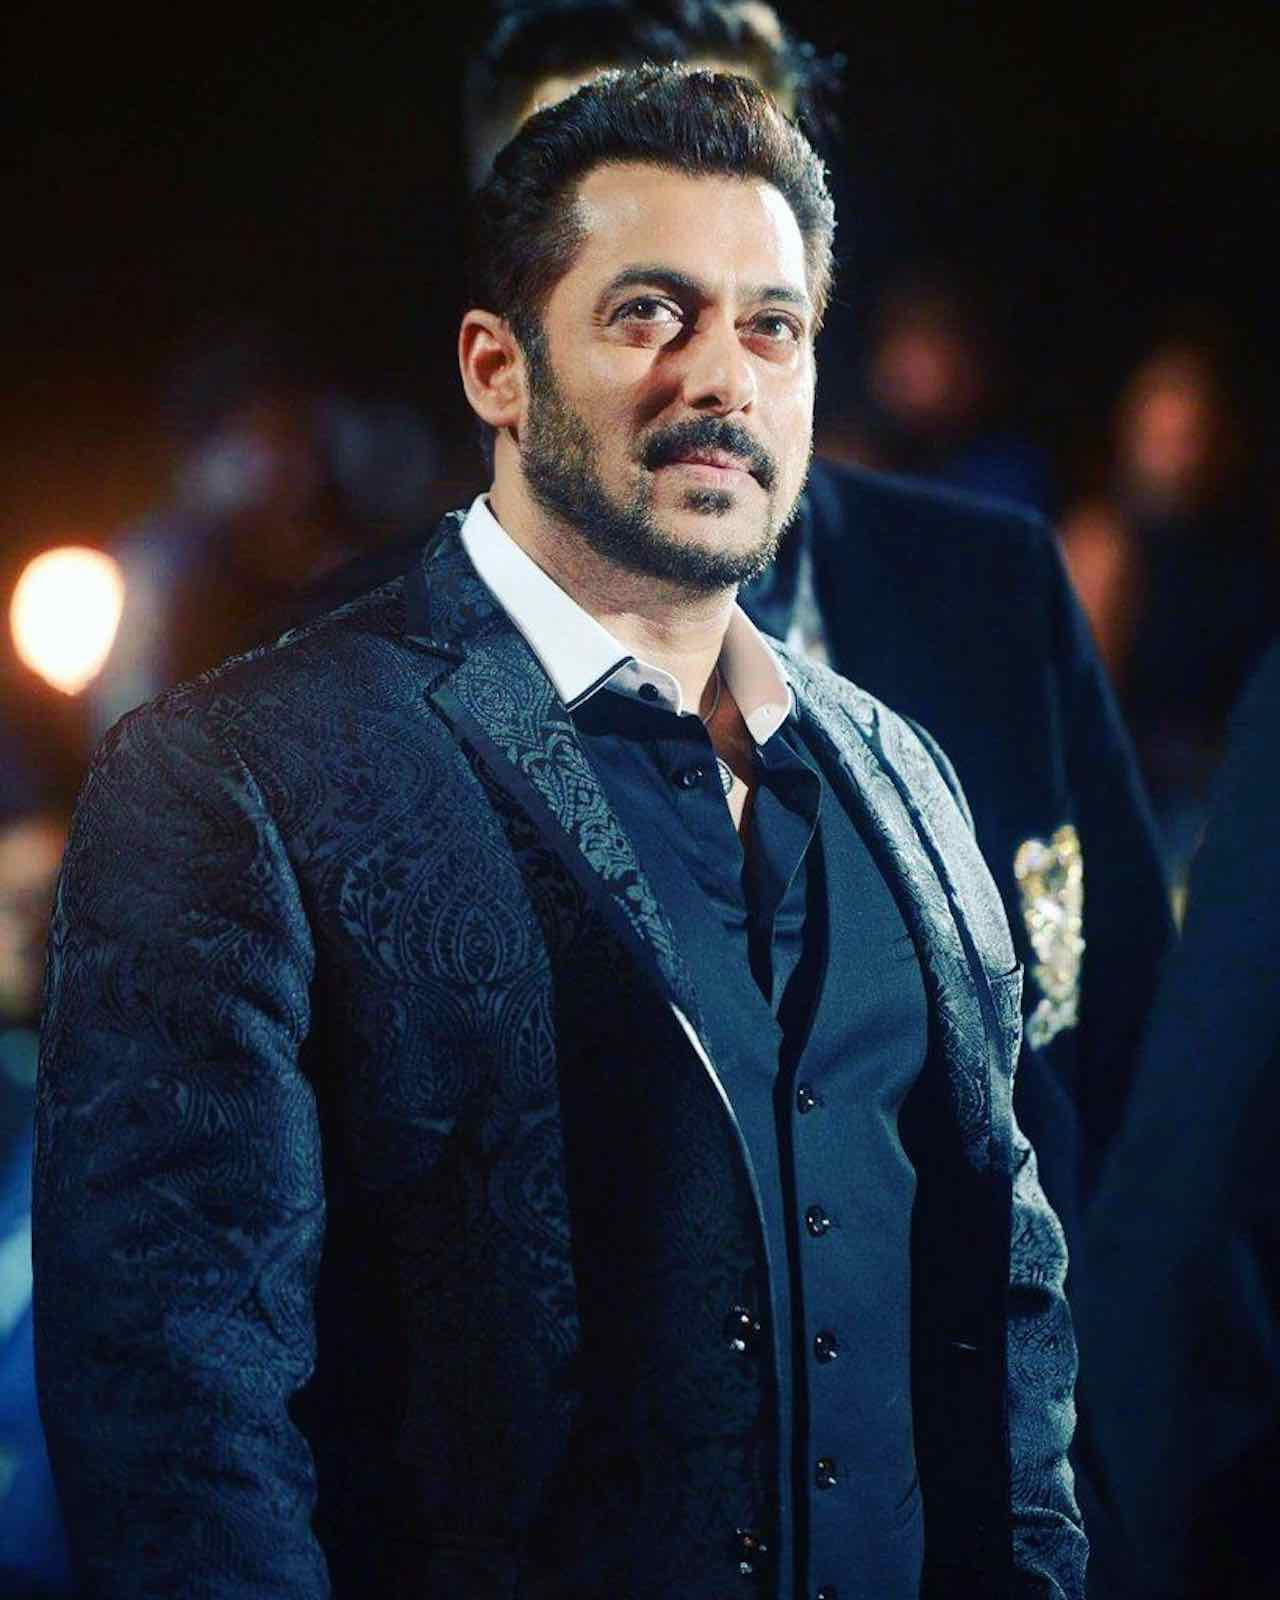 Abdul Rashid Salim Salman Khan is one of the most popular celebrities in both Bollywood and the world. Here's what we know about the strange case.